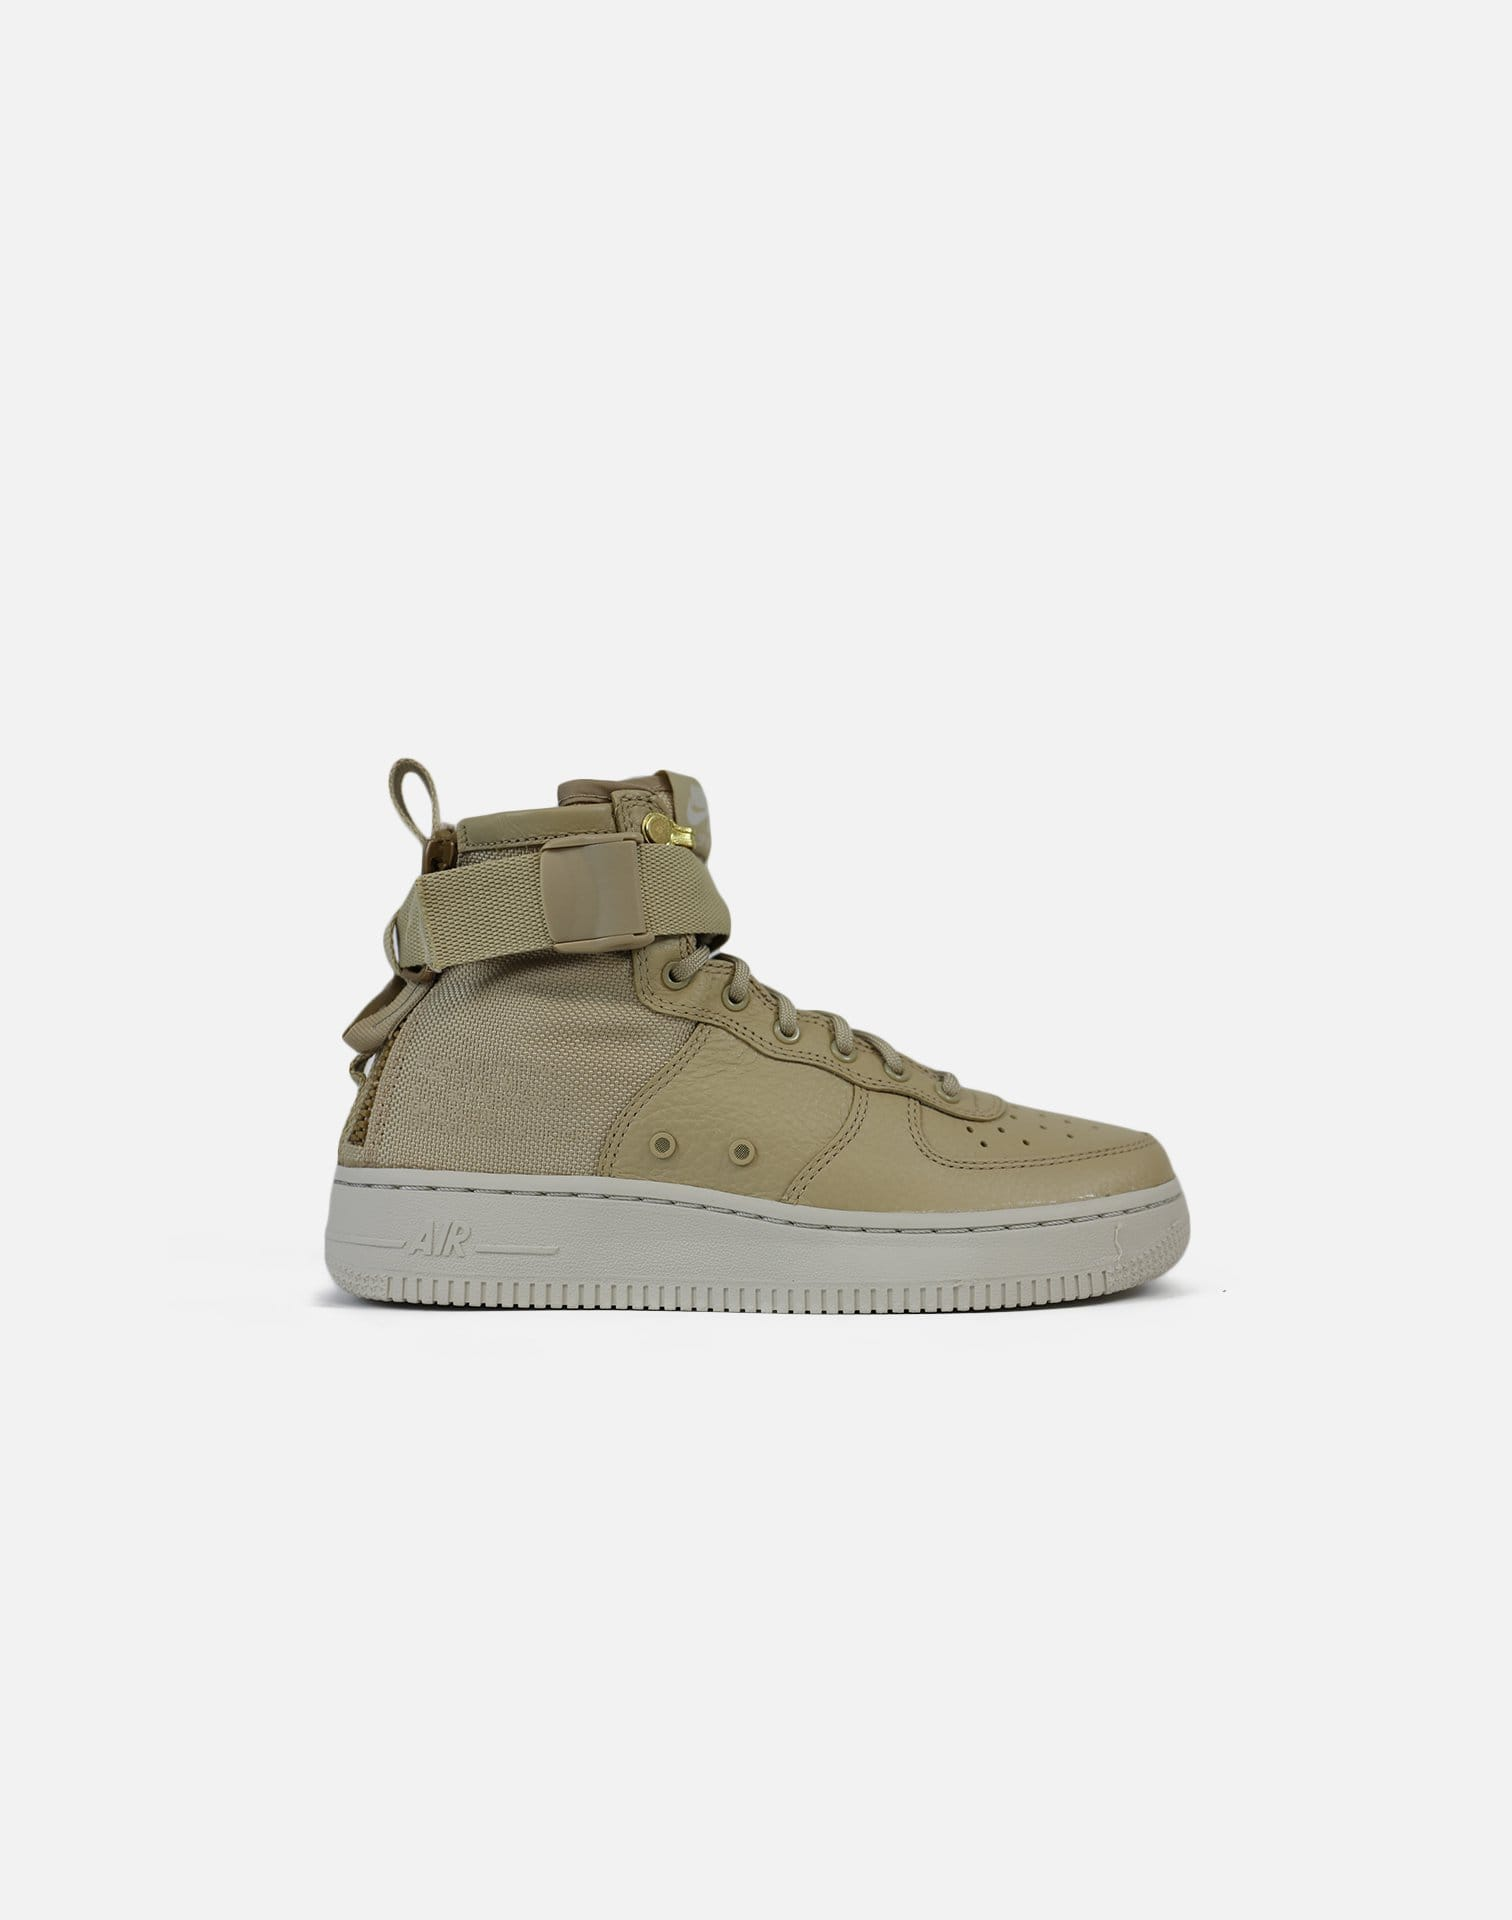 Nike SF Air Force 1 Mid 'Urban Utility' Grade-School (Mushroom)